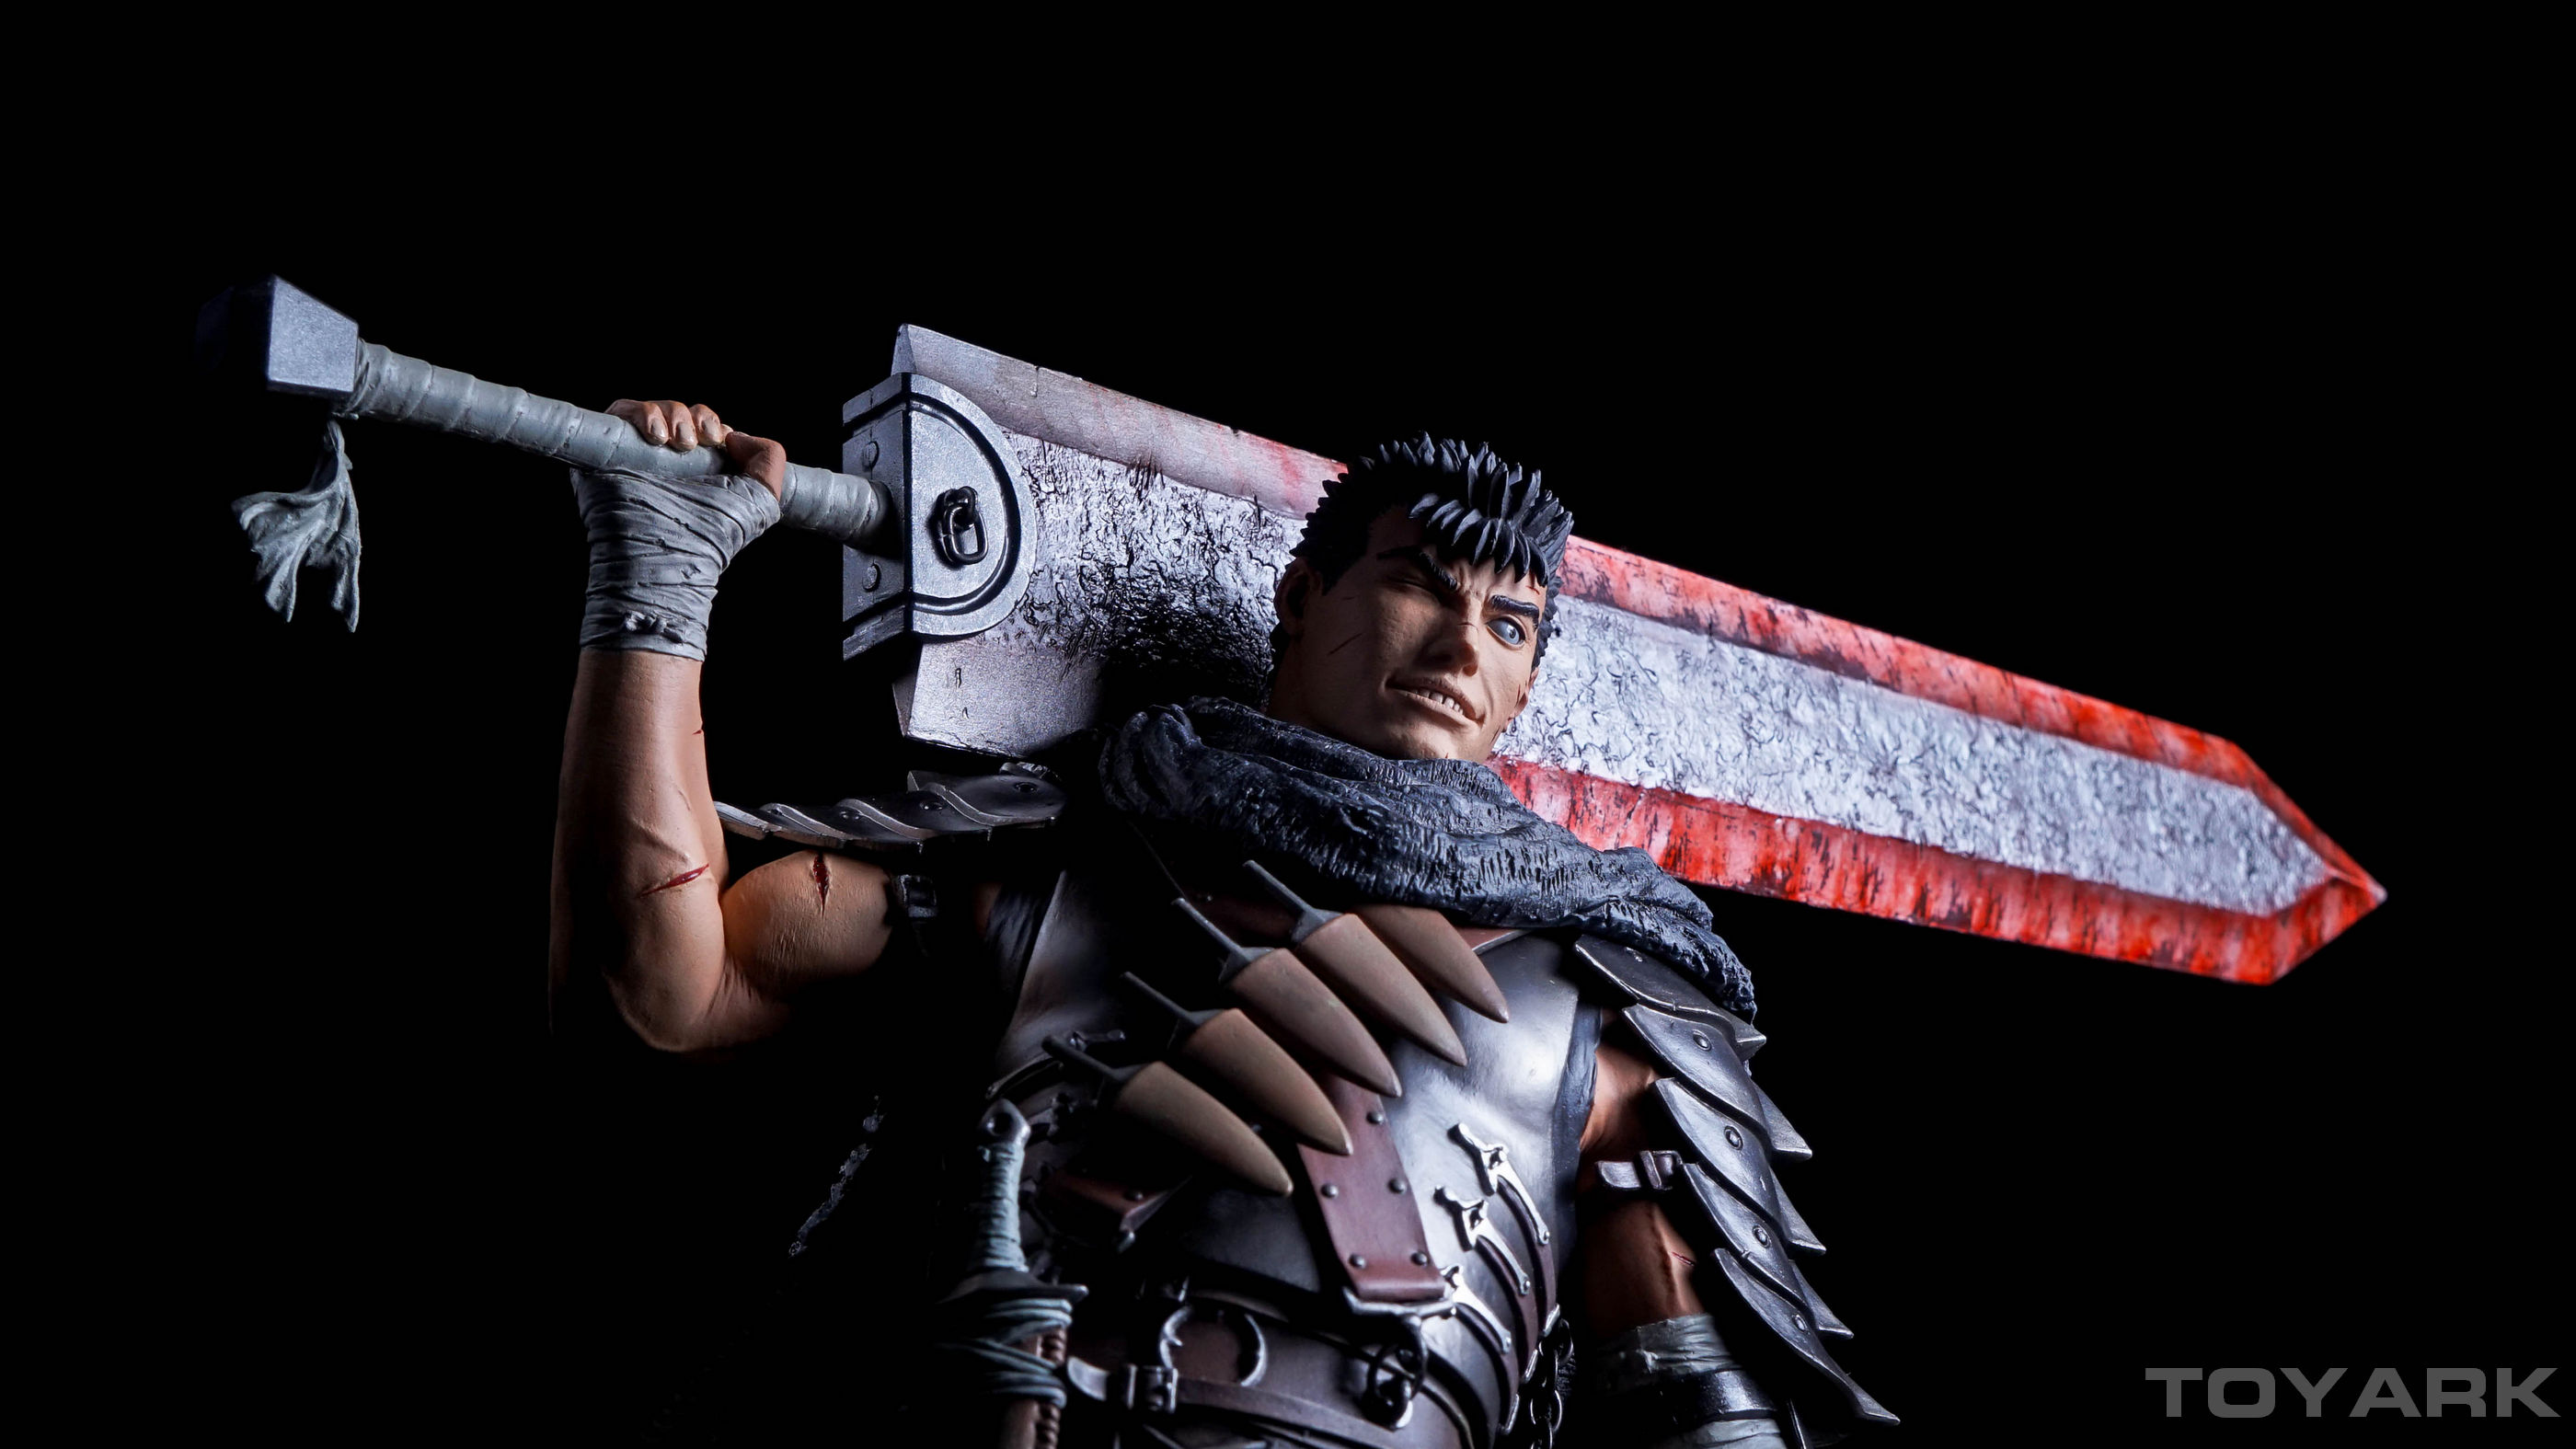 http://news.toyark.com/wp-content/uploads/sites/4/2015/11/Berserk-Guts-Statue-052.jpg